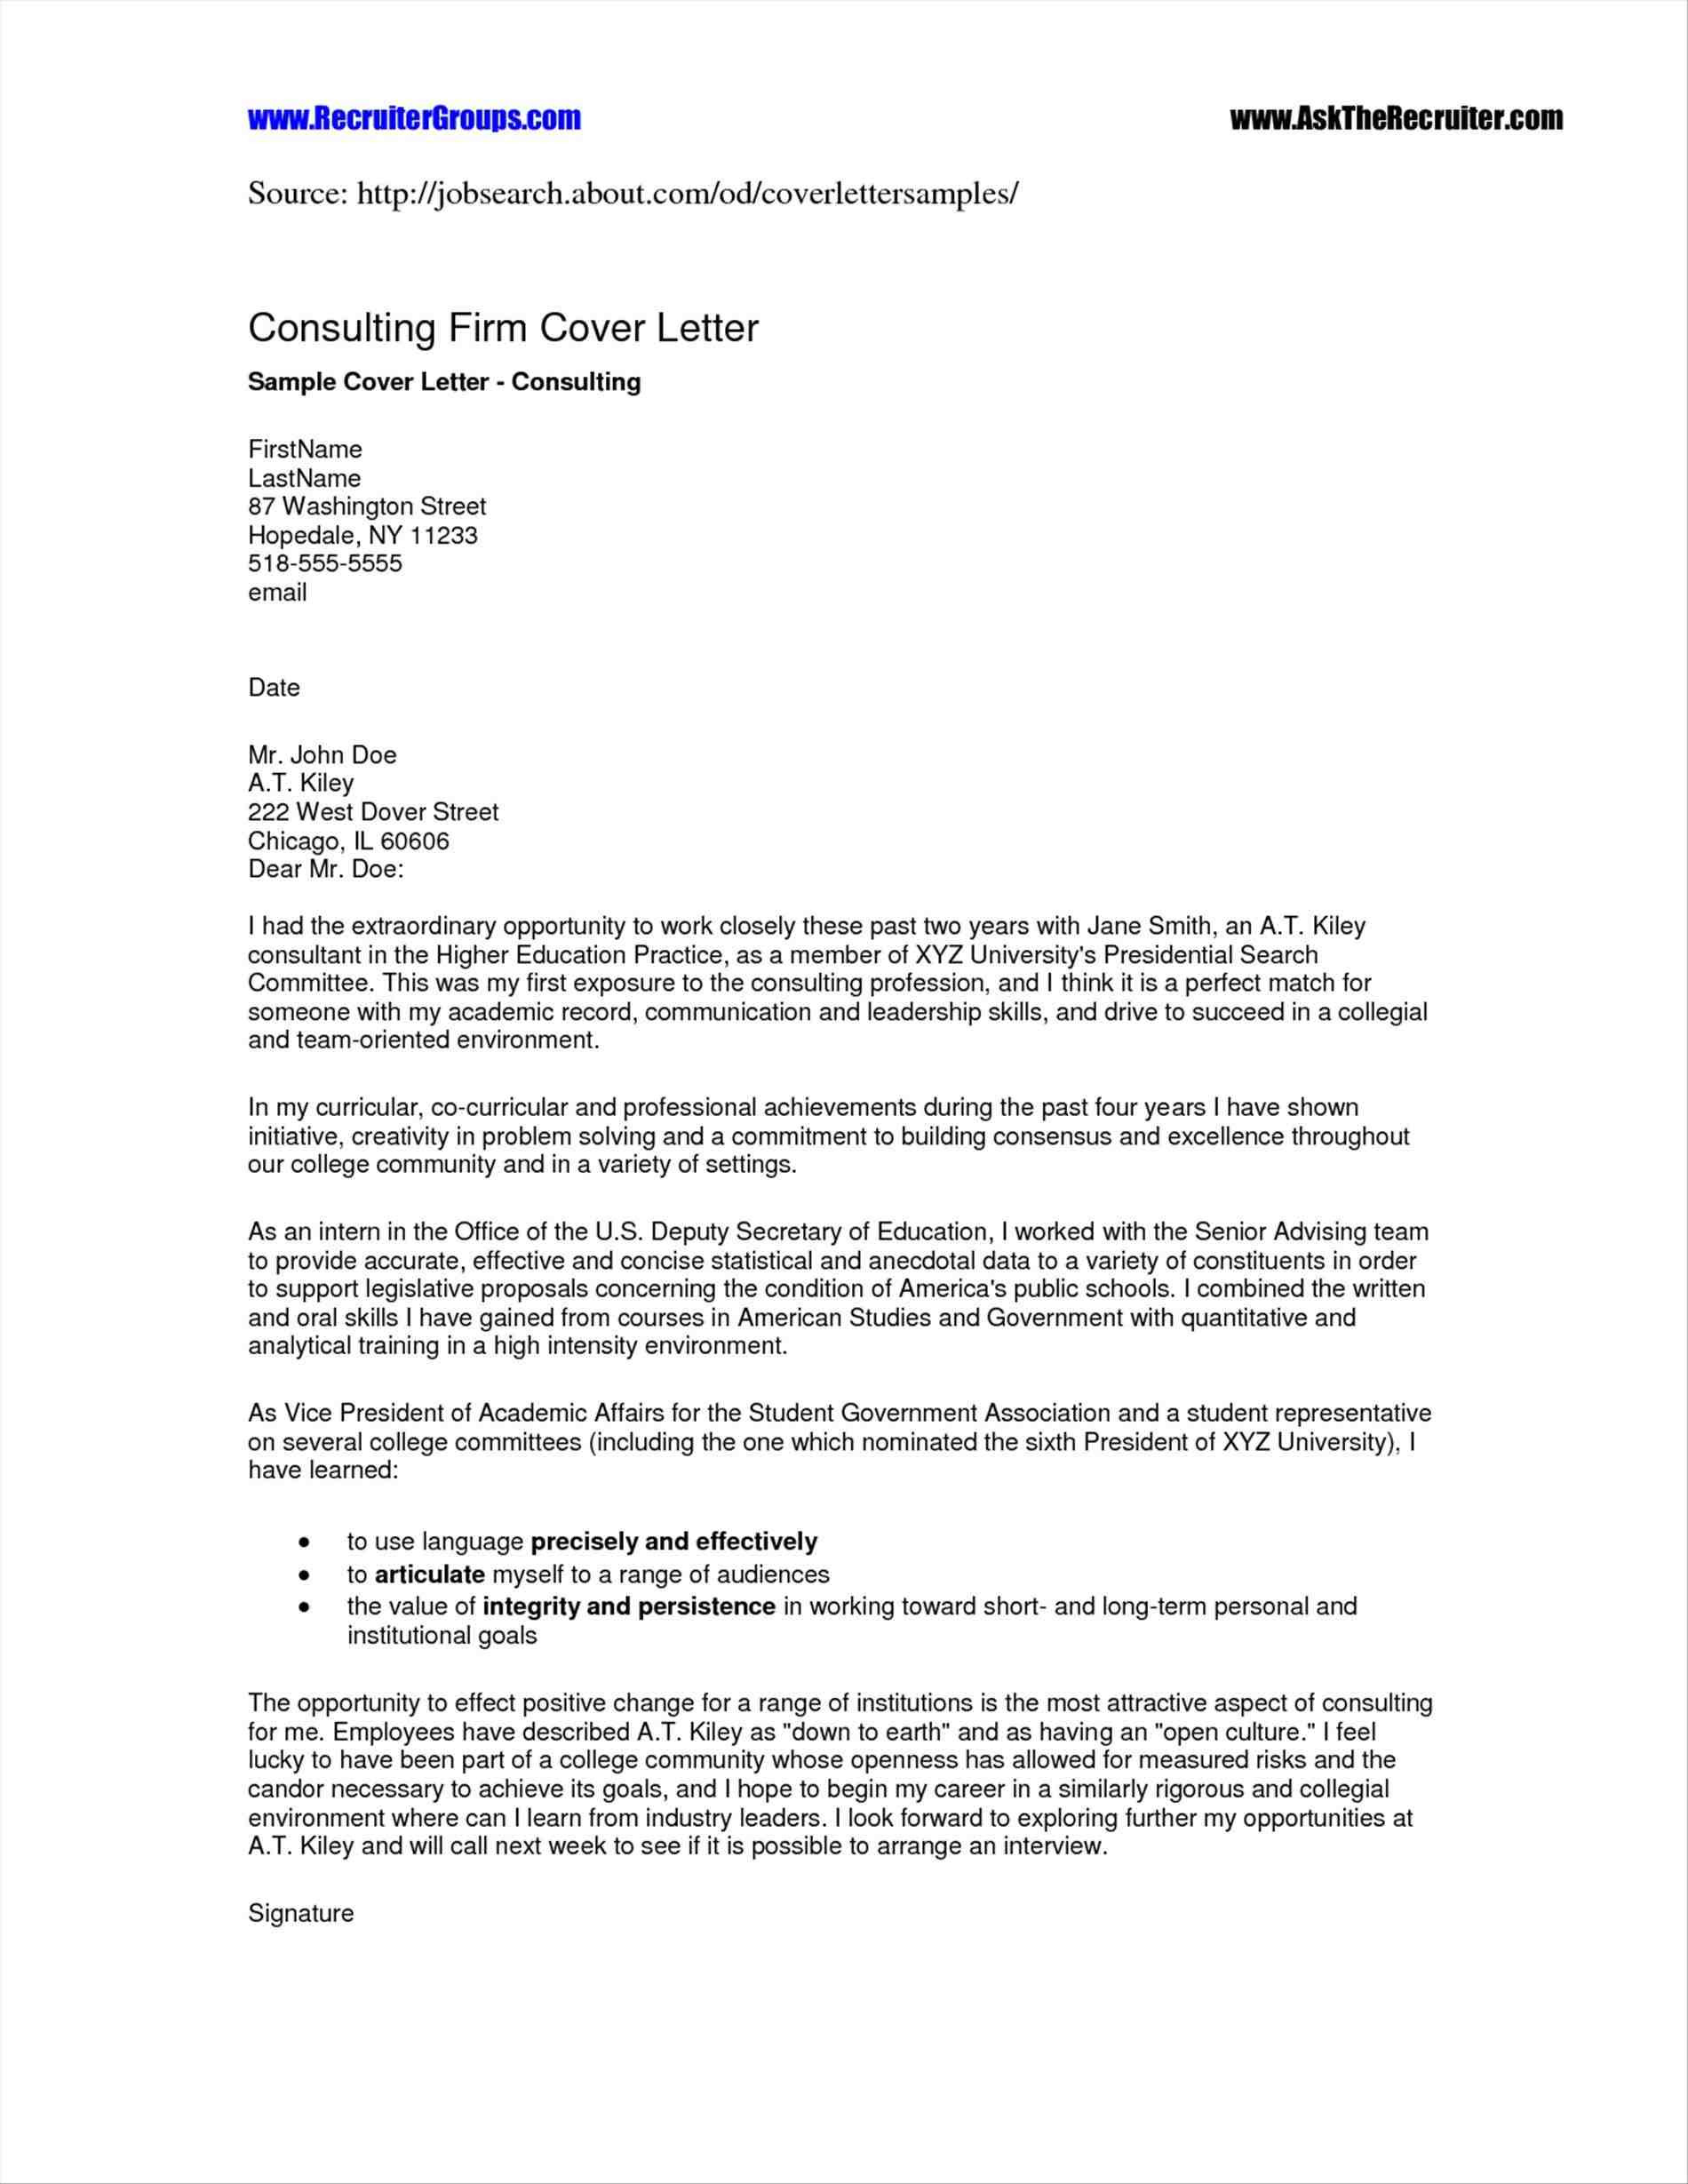 Open Enrollment Template Letter - Sample Open Enrollment Letter to Employees Beautiful New Open